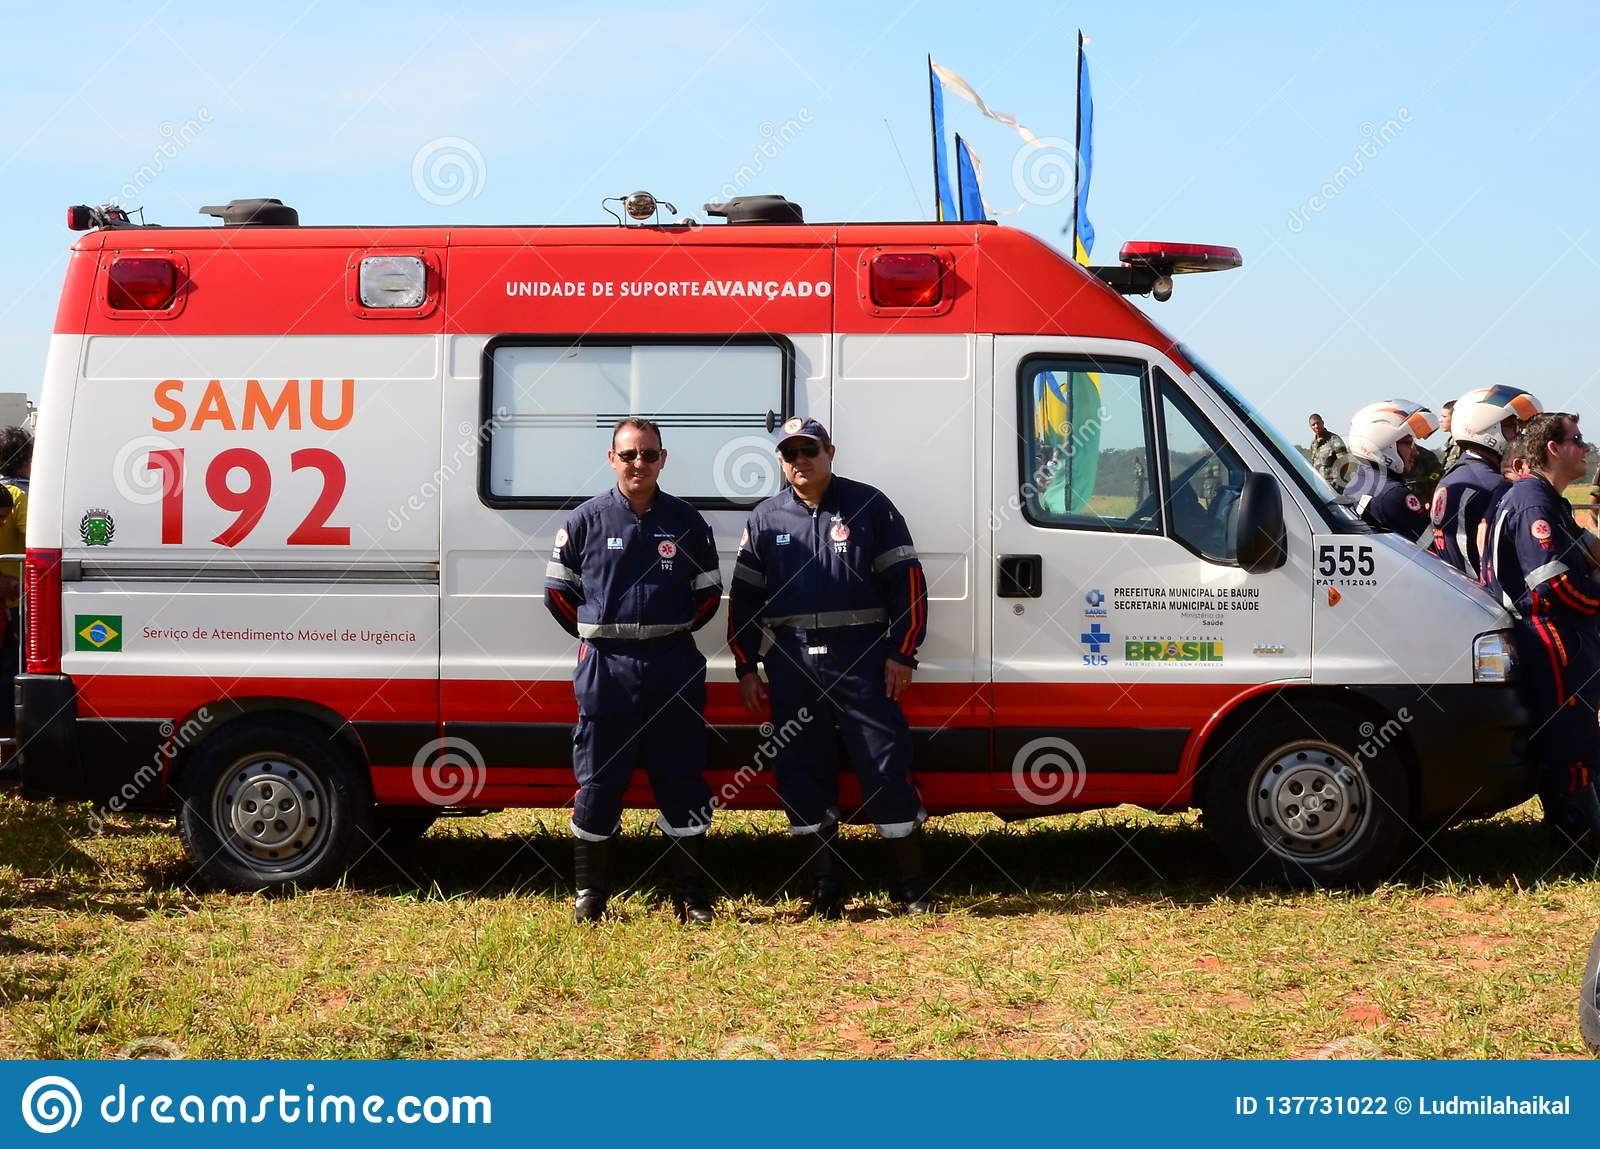 Brazilian Emergency Rescue Service SAMU standing by for a possible call